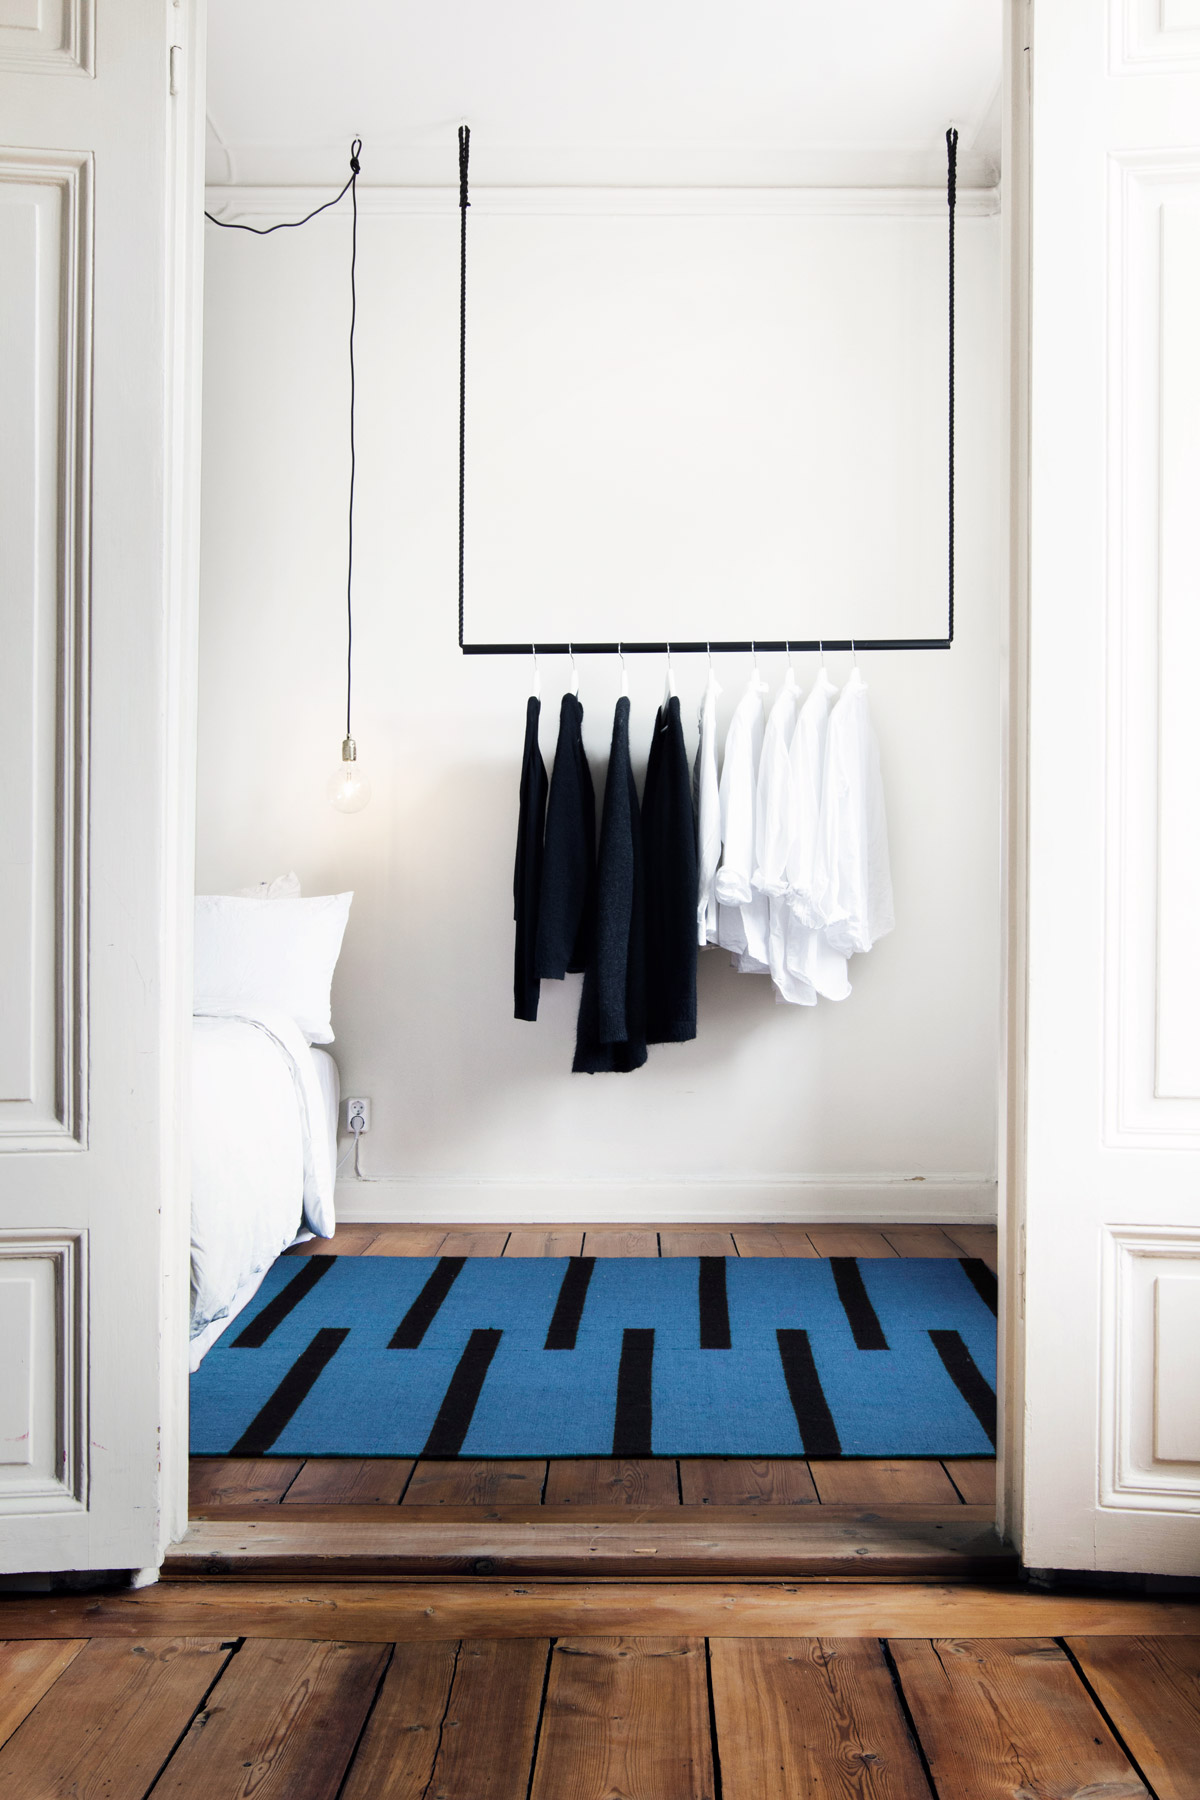 Flatweave rug Tiger in blue displayed in a white turn of the century bedroom.